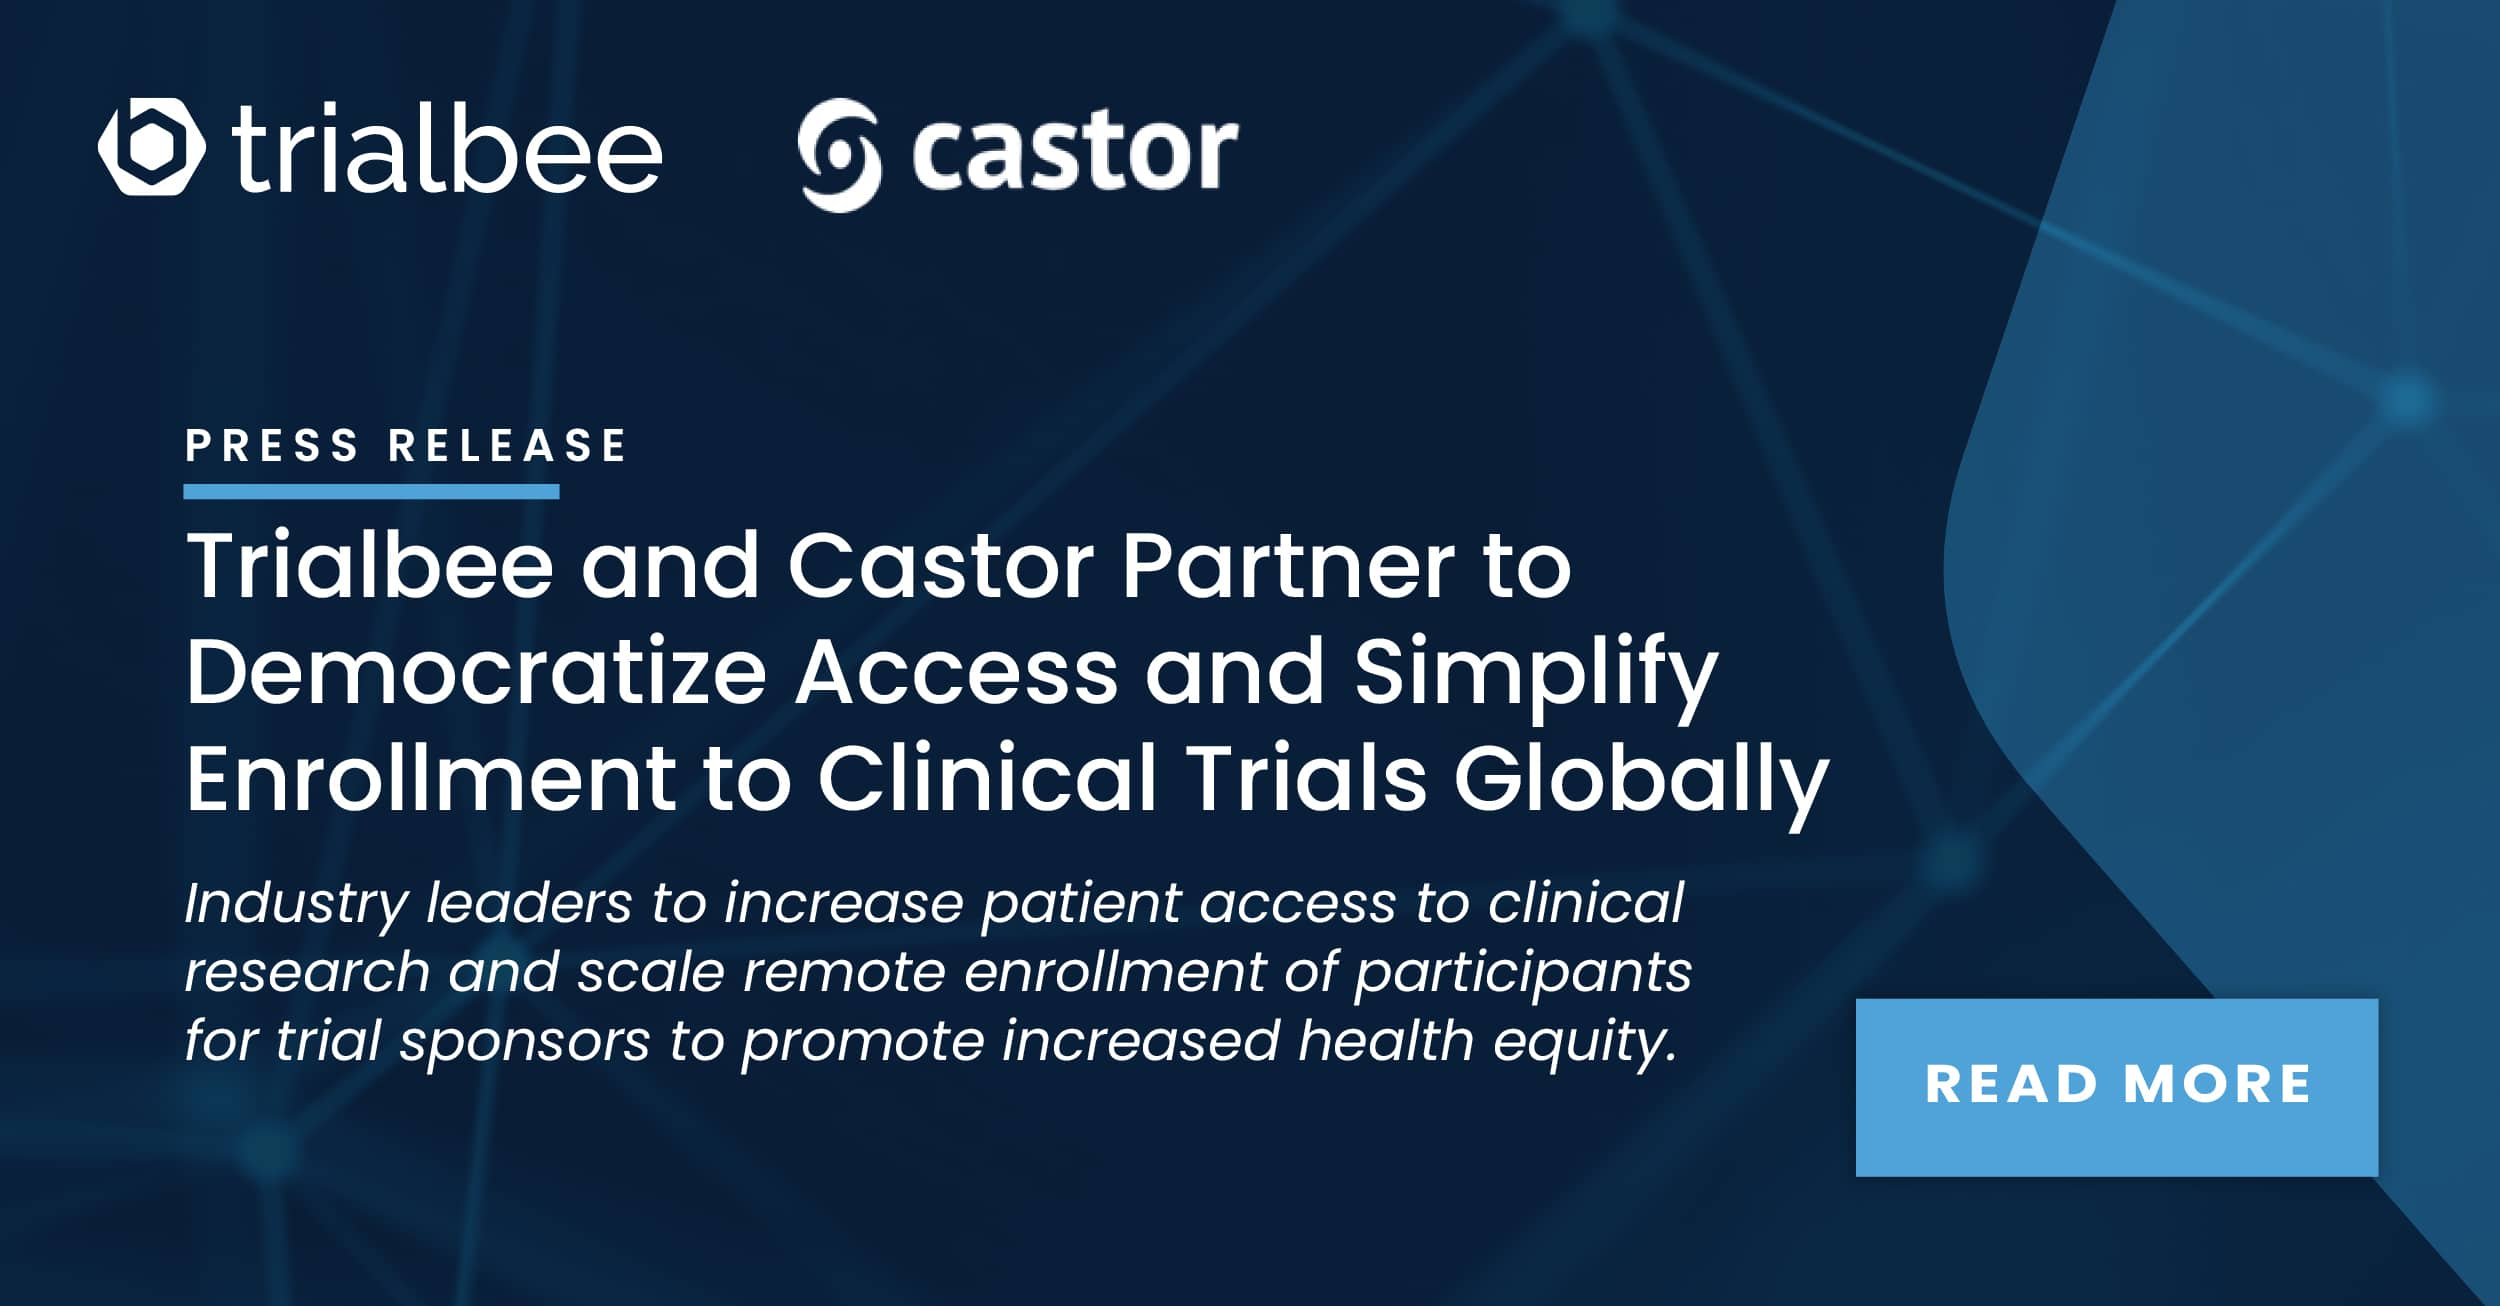 Trialbee and Castor Partner to Democratize Access and Simplify Enrollment to Clinical Trials Globally